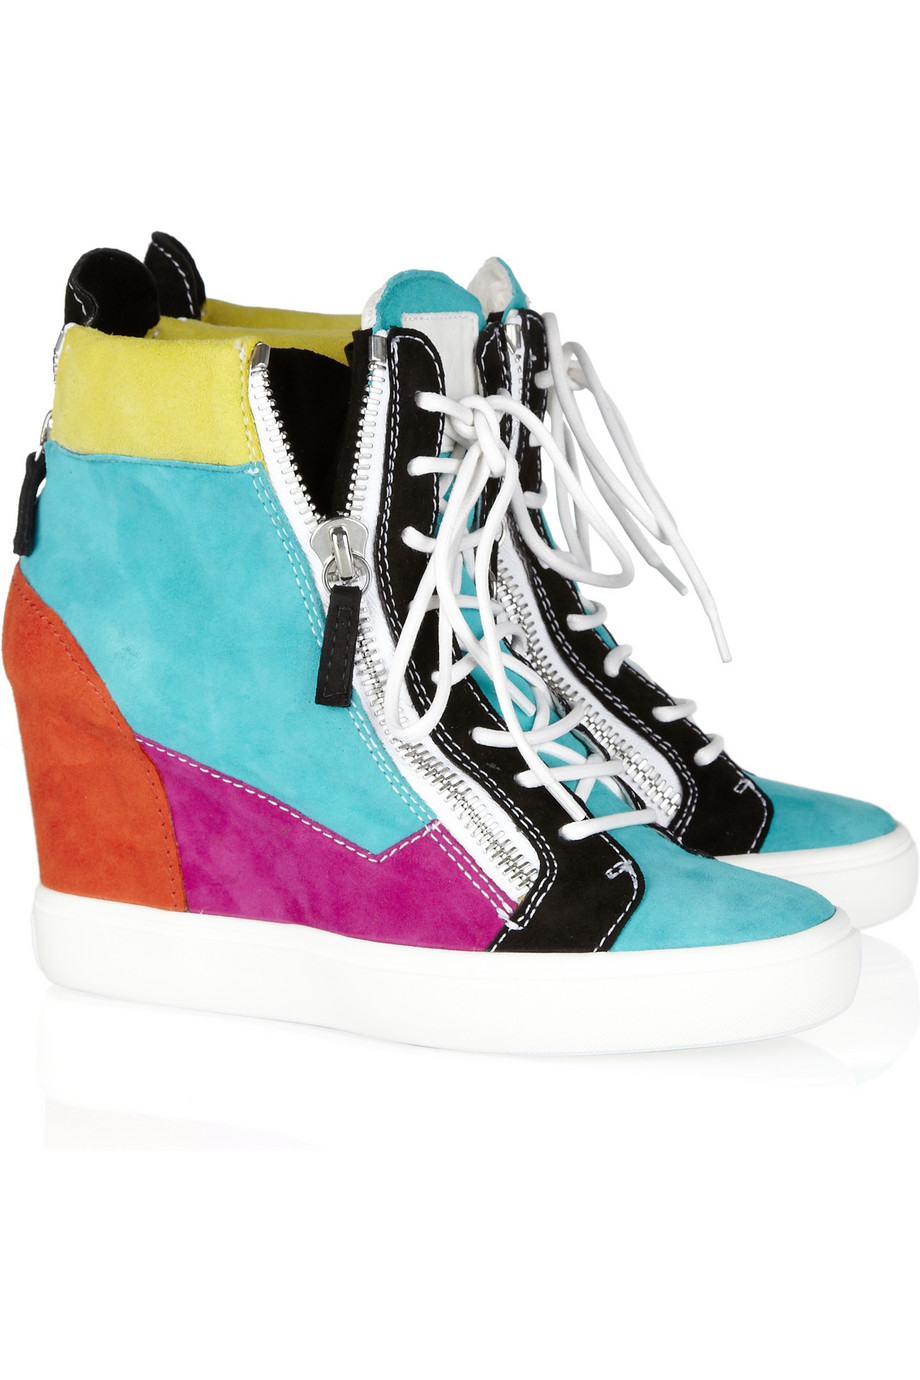 Have you bought your wedge sneakers yet? ~ The Serena Saga